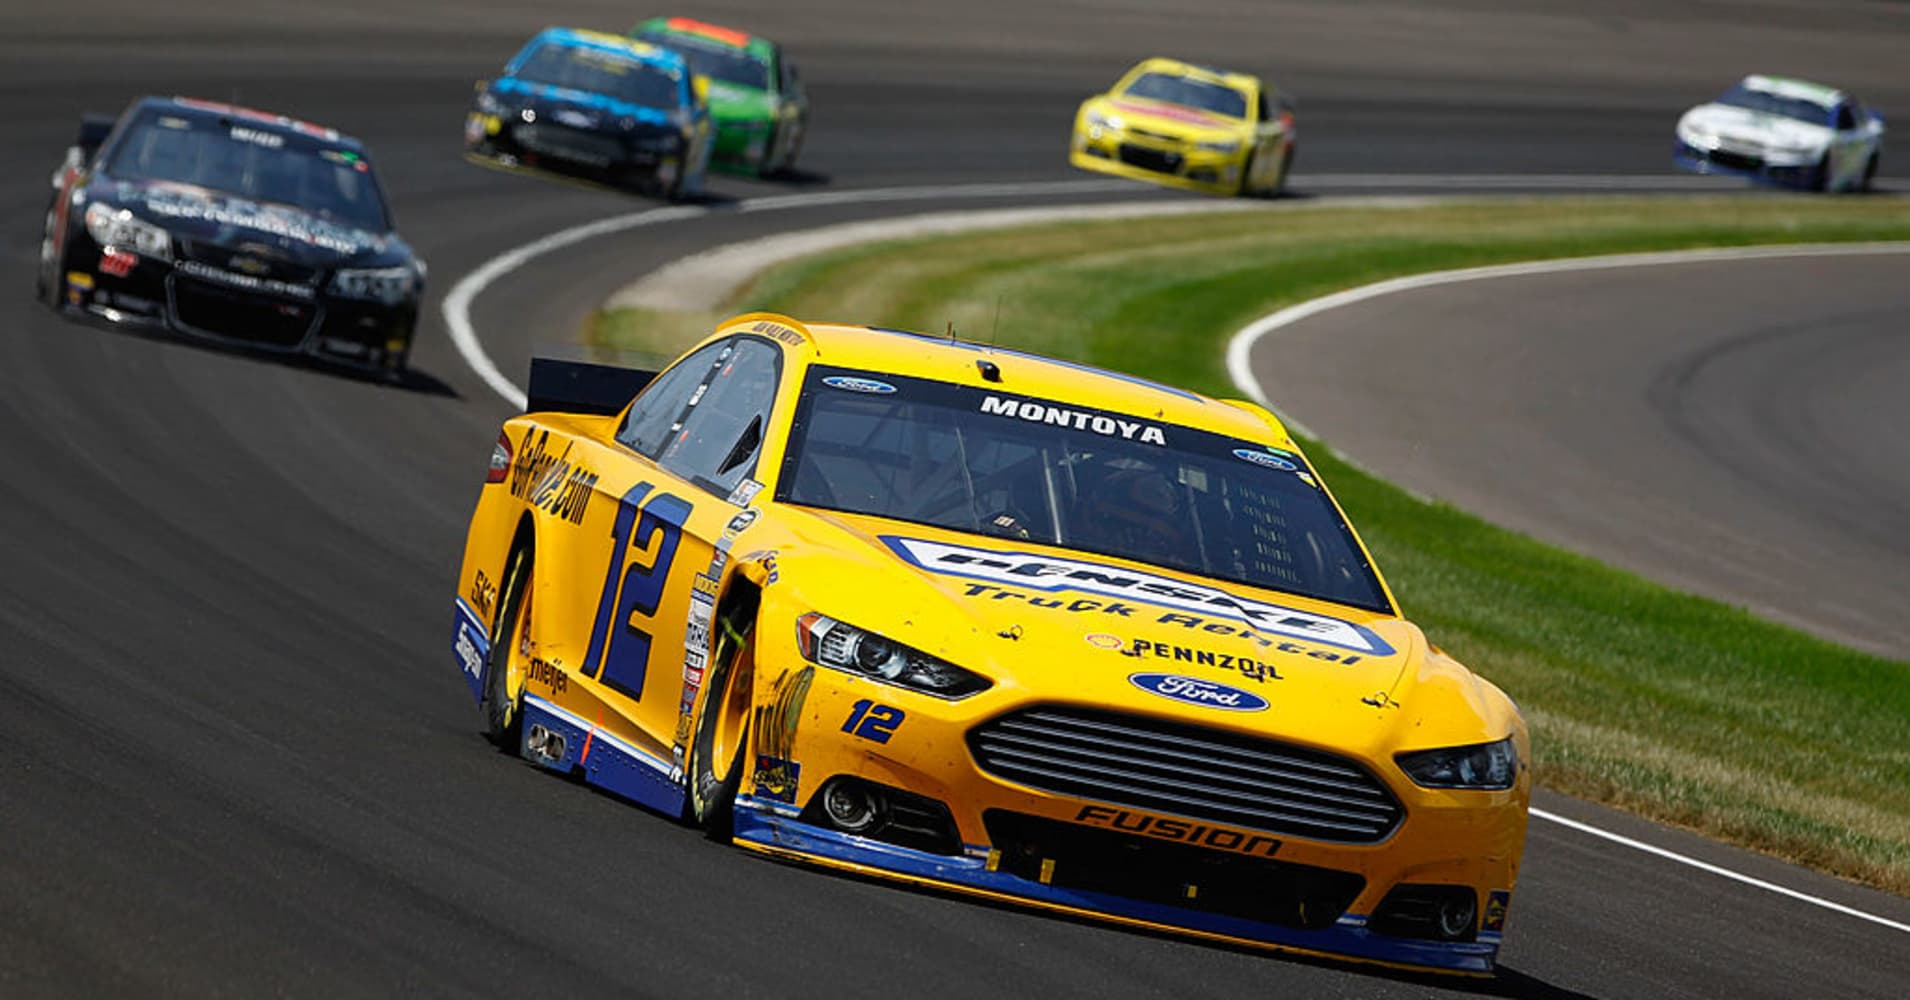 Nascar's Penske: The sport is 'stronger than ever' despite falling viewership